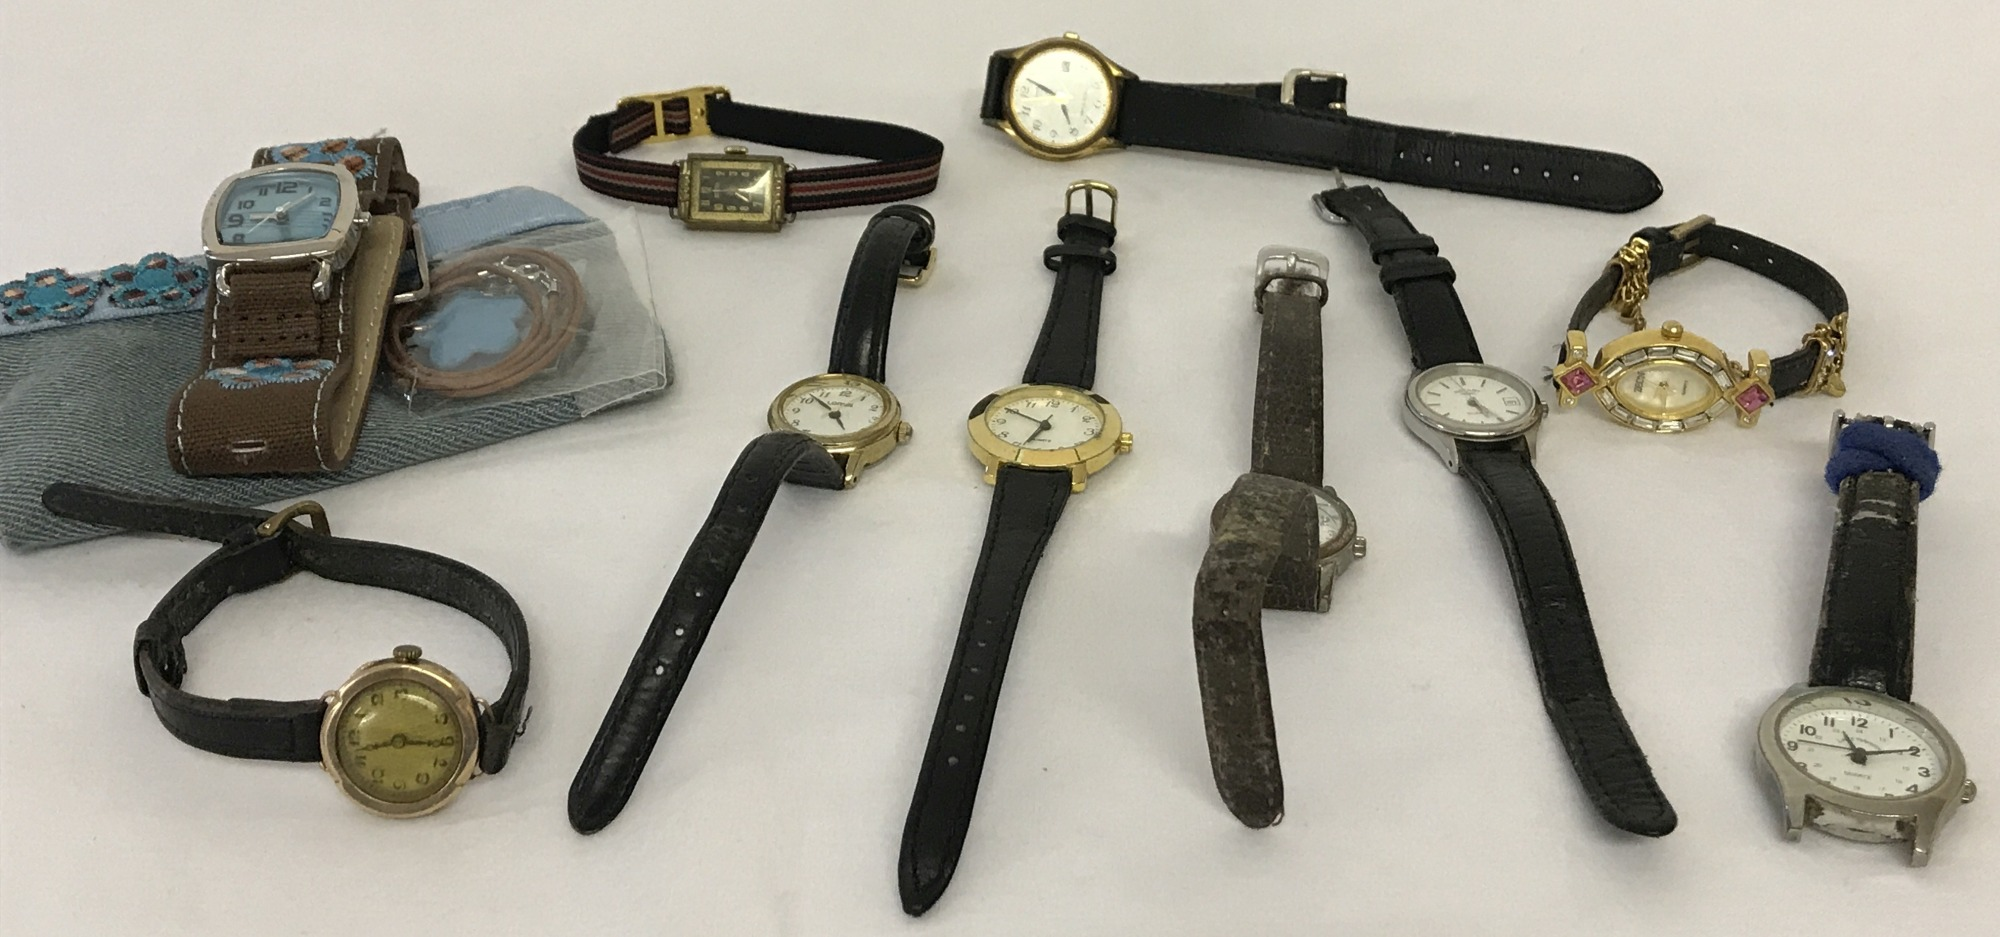 Lot 65 - A collection of 10 ladies wristwatches to include vintage gold cased watch.